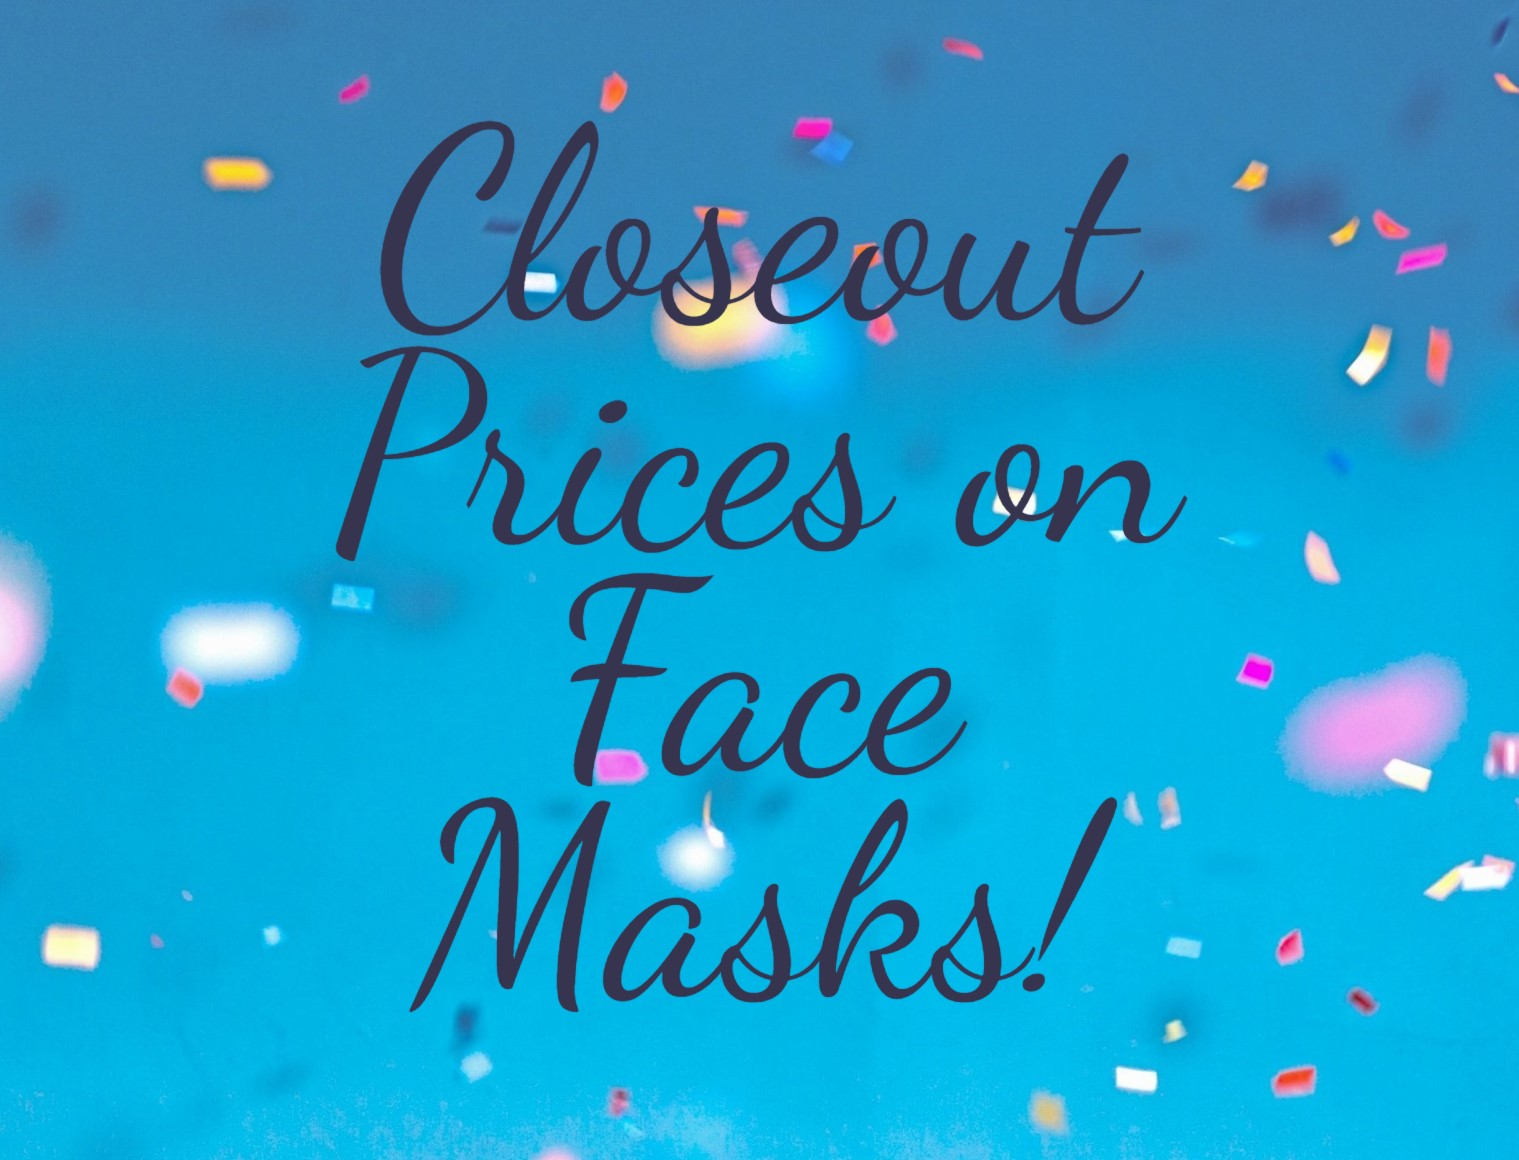 Closeout Prices on Face Masks